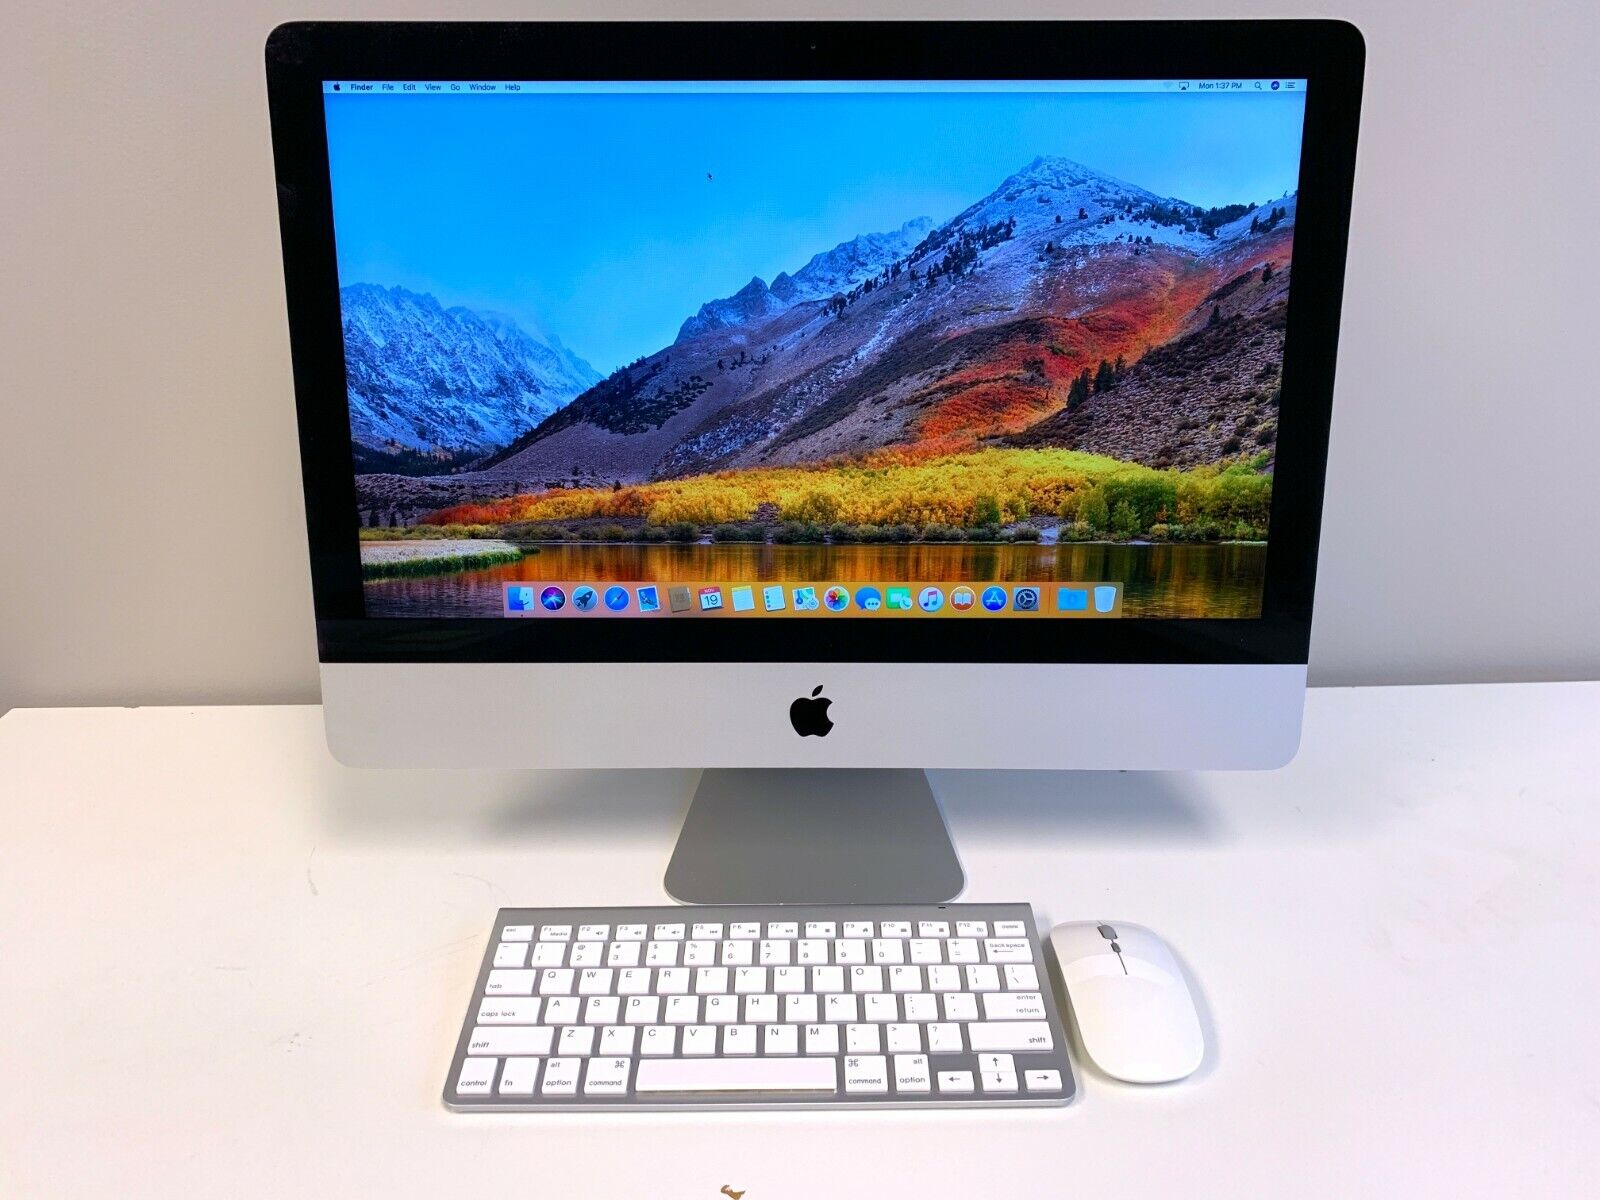 Apple iMac 21.5 inch SLIM / QUAD CORE i7 3.8GHZ / 1TB SSD Hybrid / 16GB / OS2017. Buy it now for 1089.00